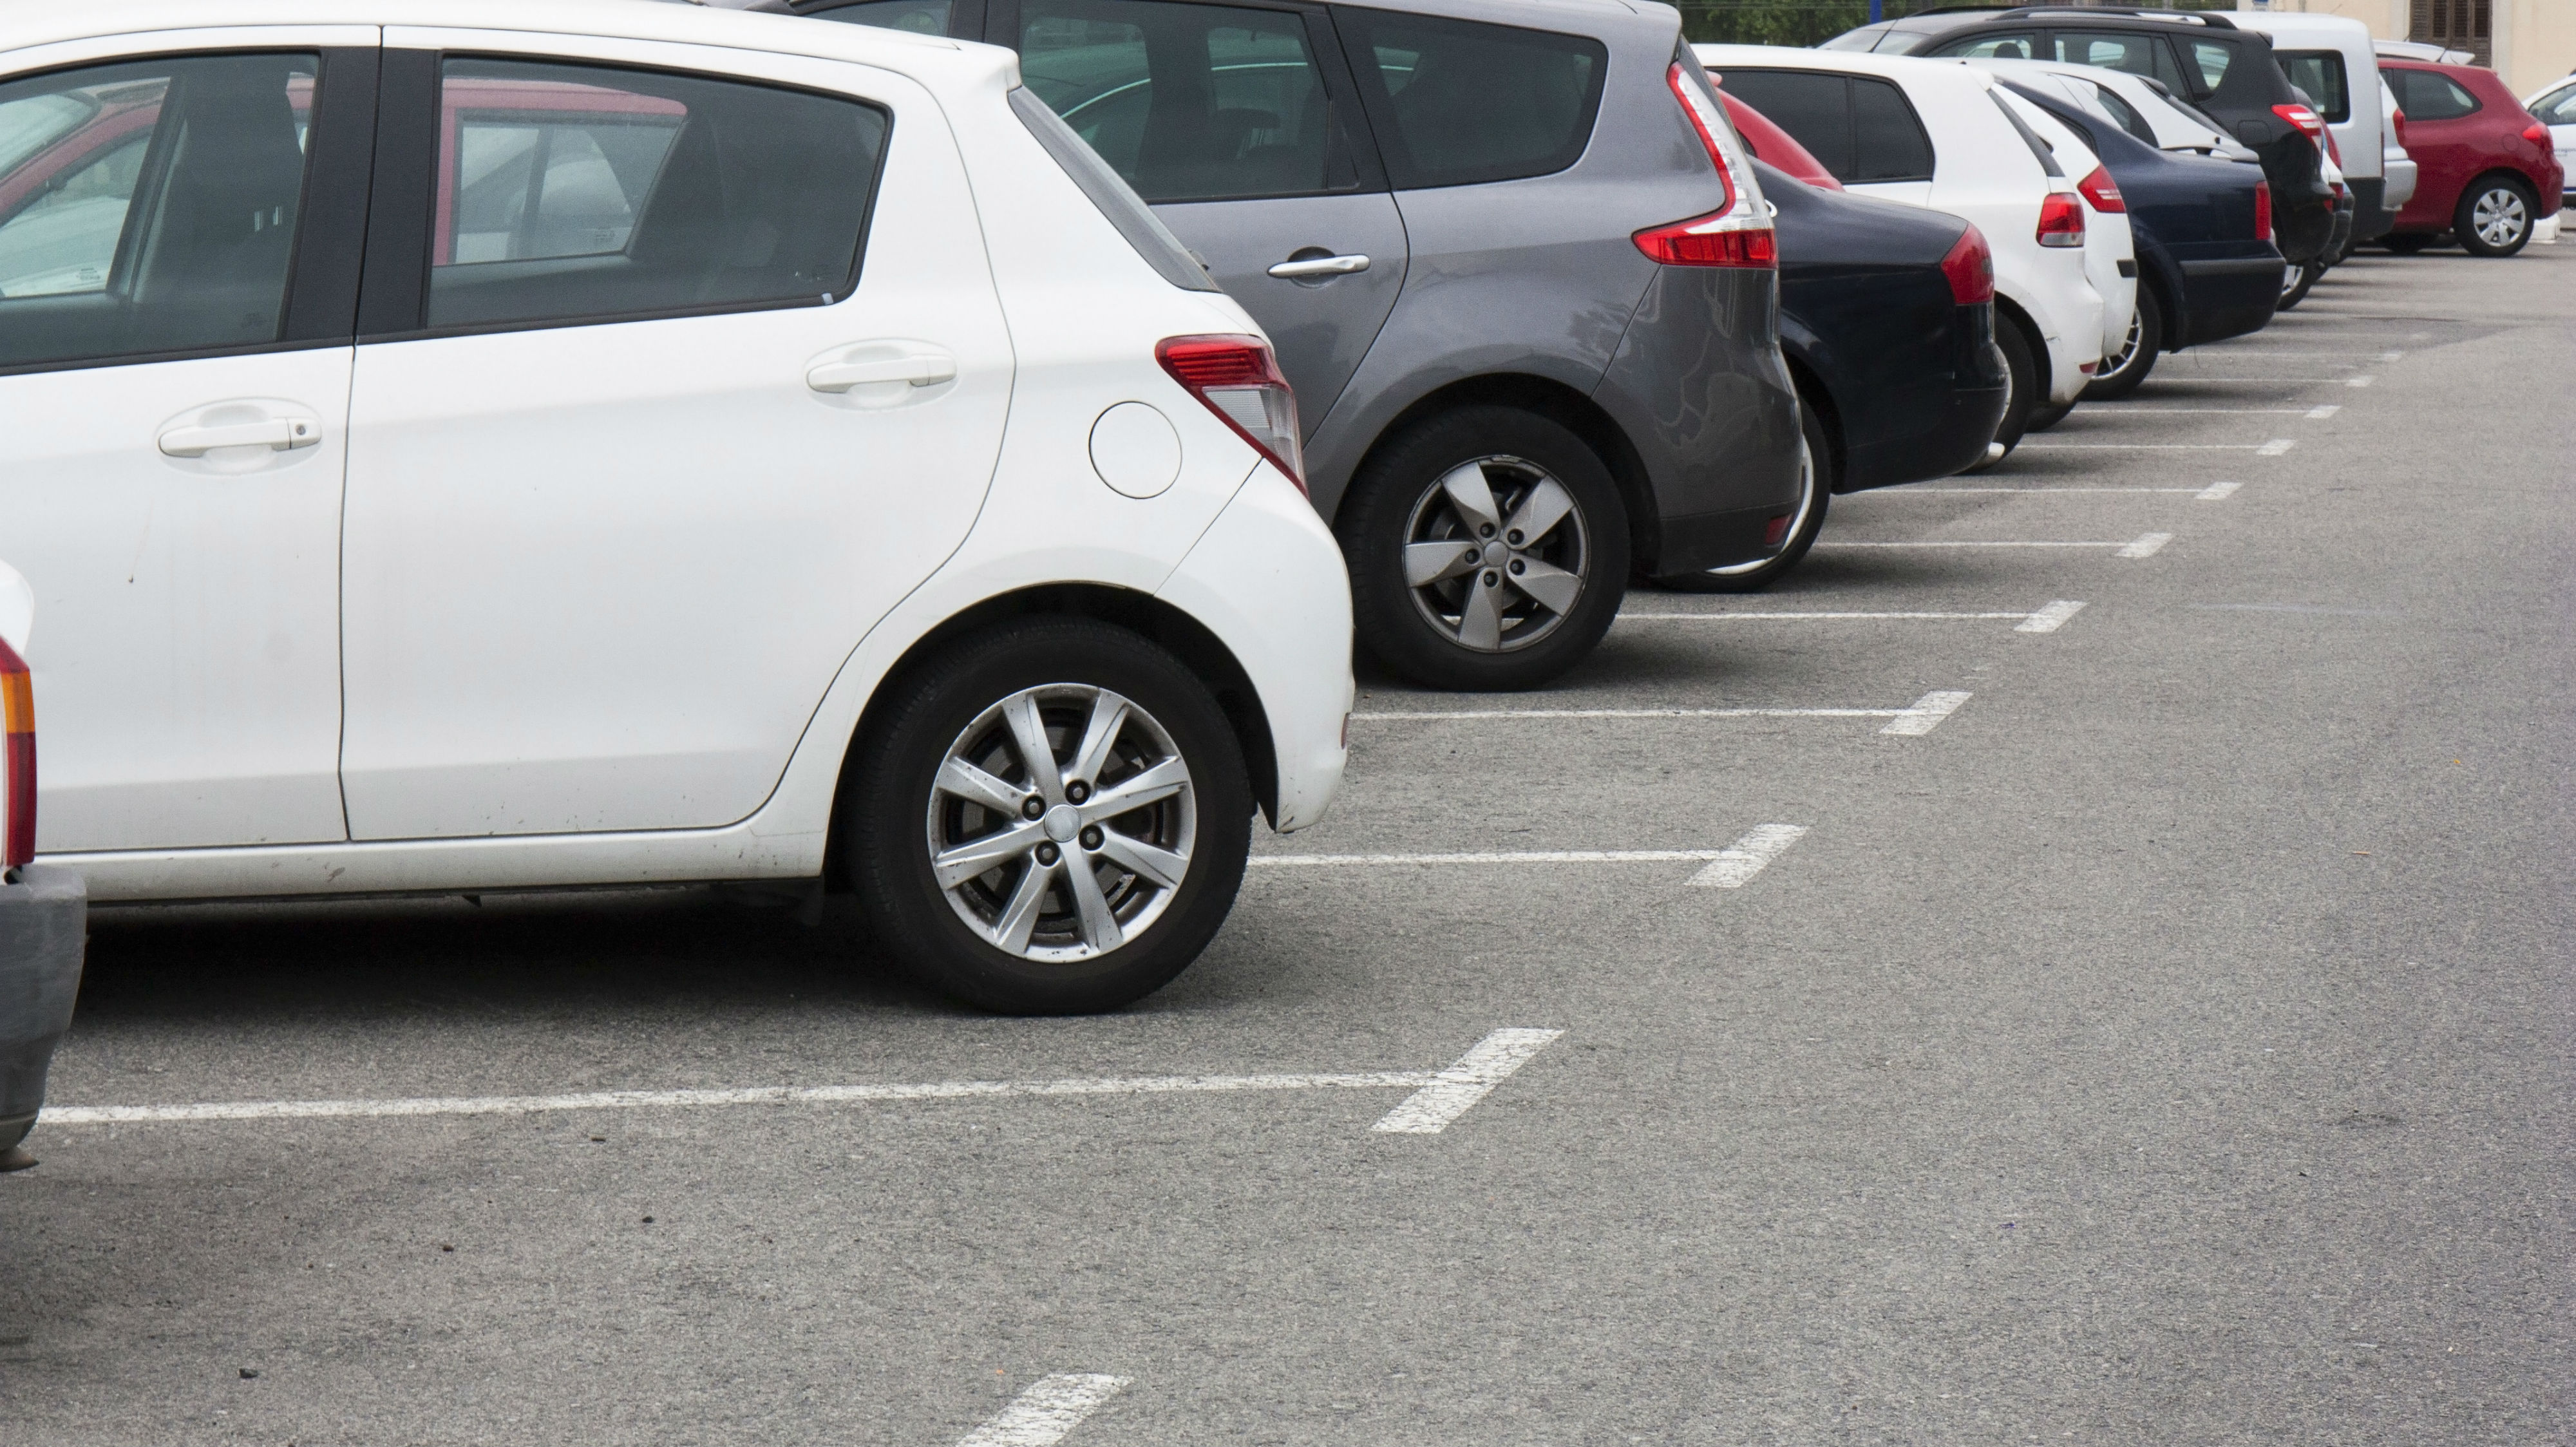 Parking is free at the park-and-ride, if you can find a space. Photo / Getty Images